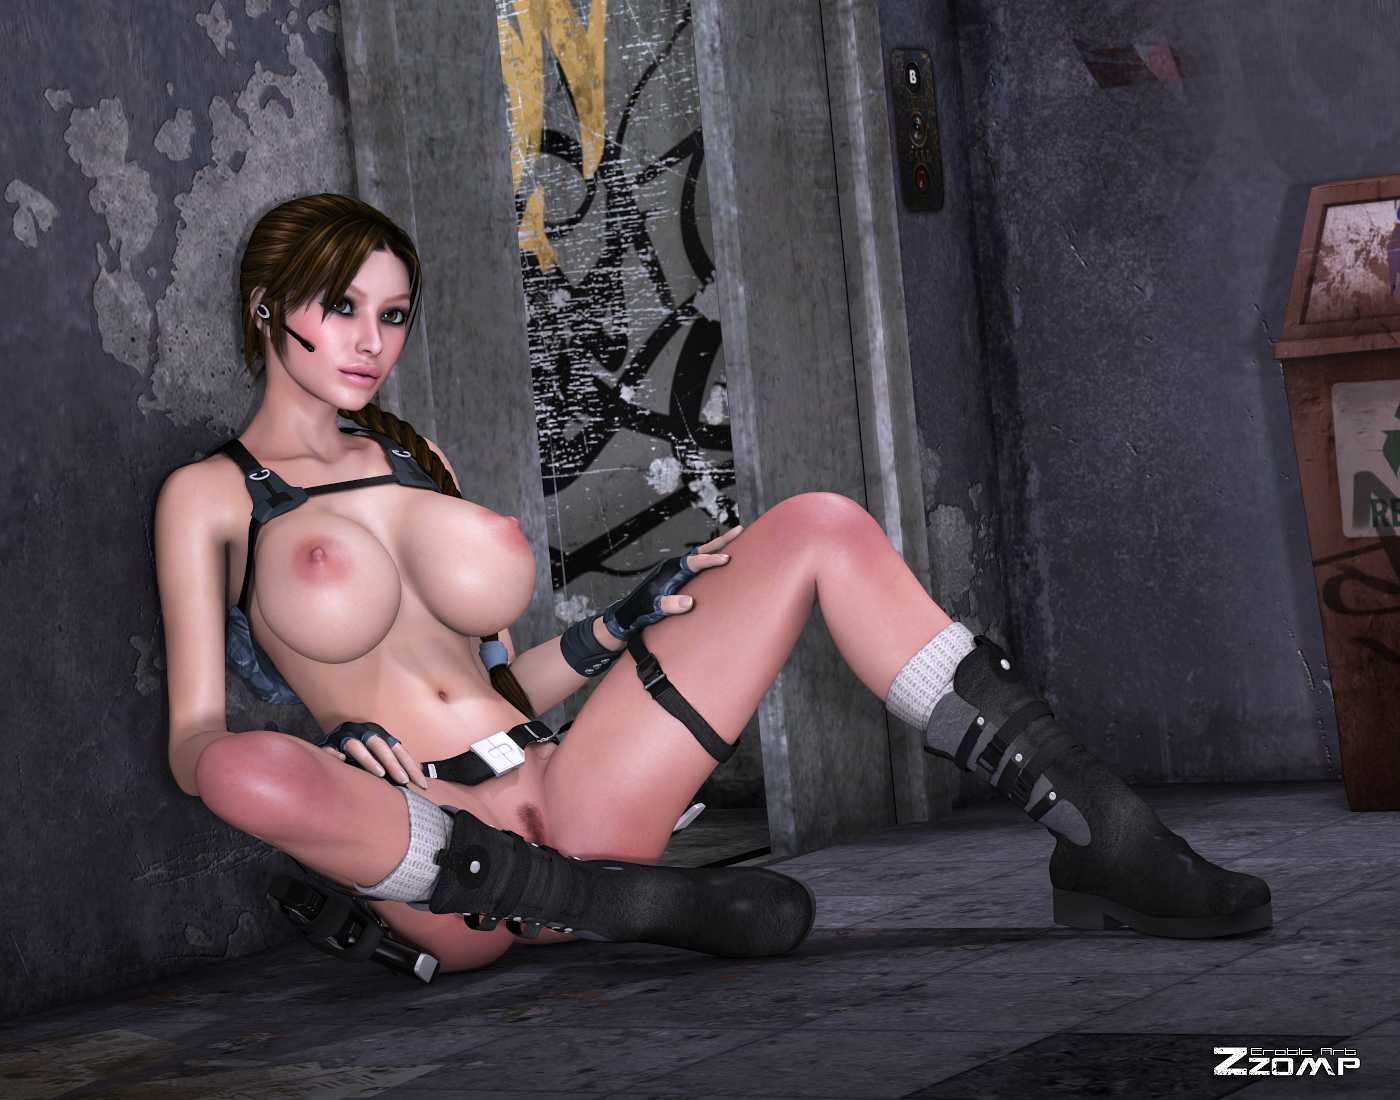 Lara croft in trouble porno images sexy clip